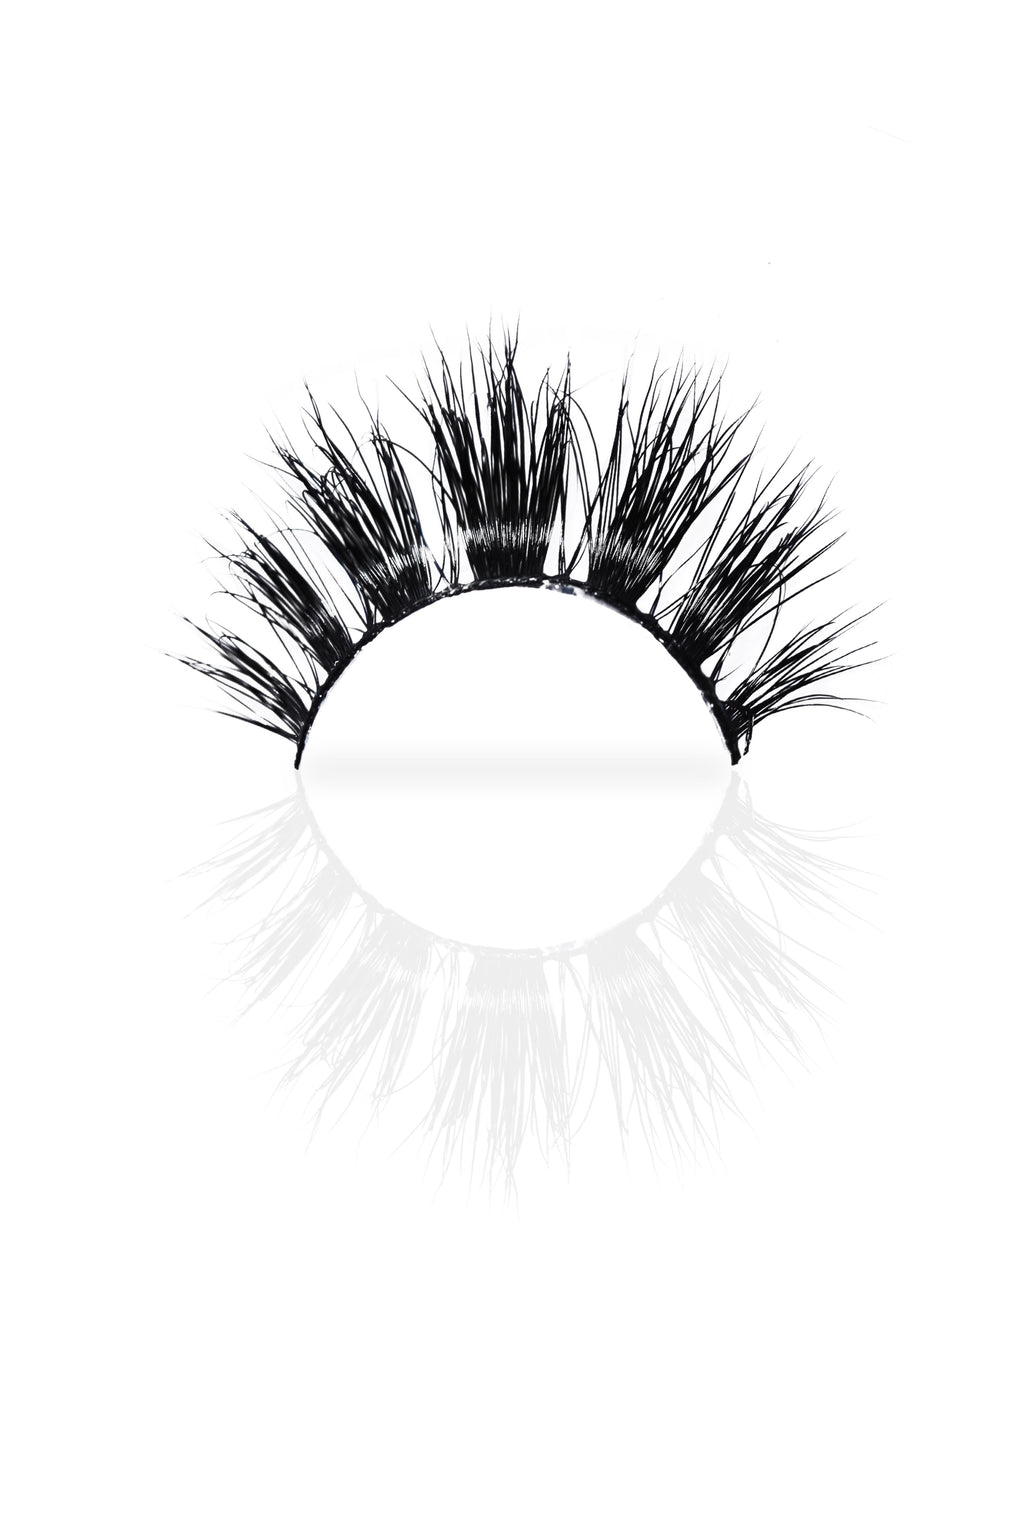 GB10 Luxury Mink Eyelashes